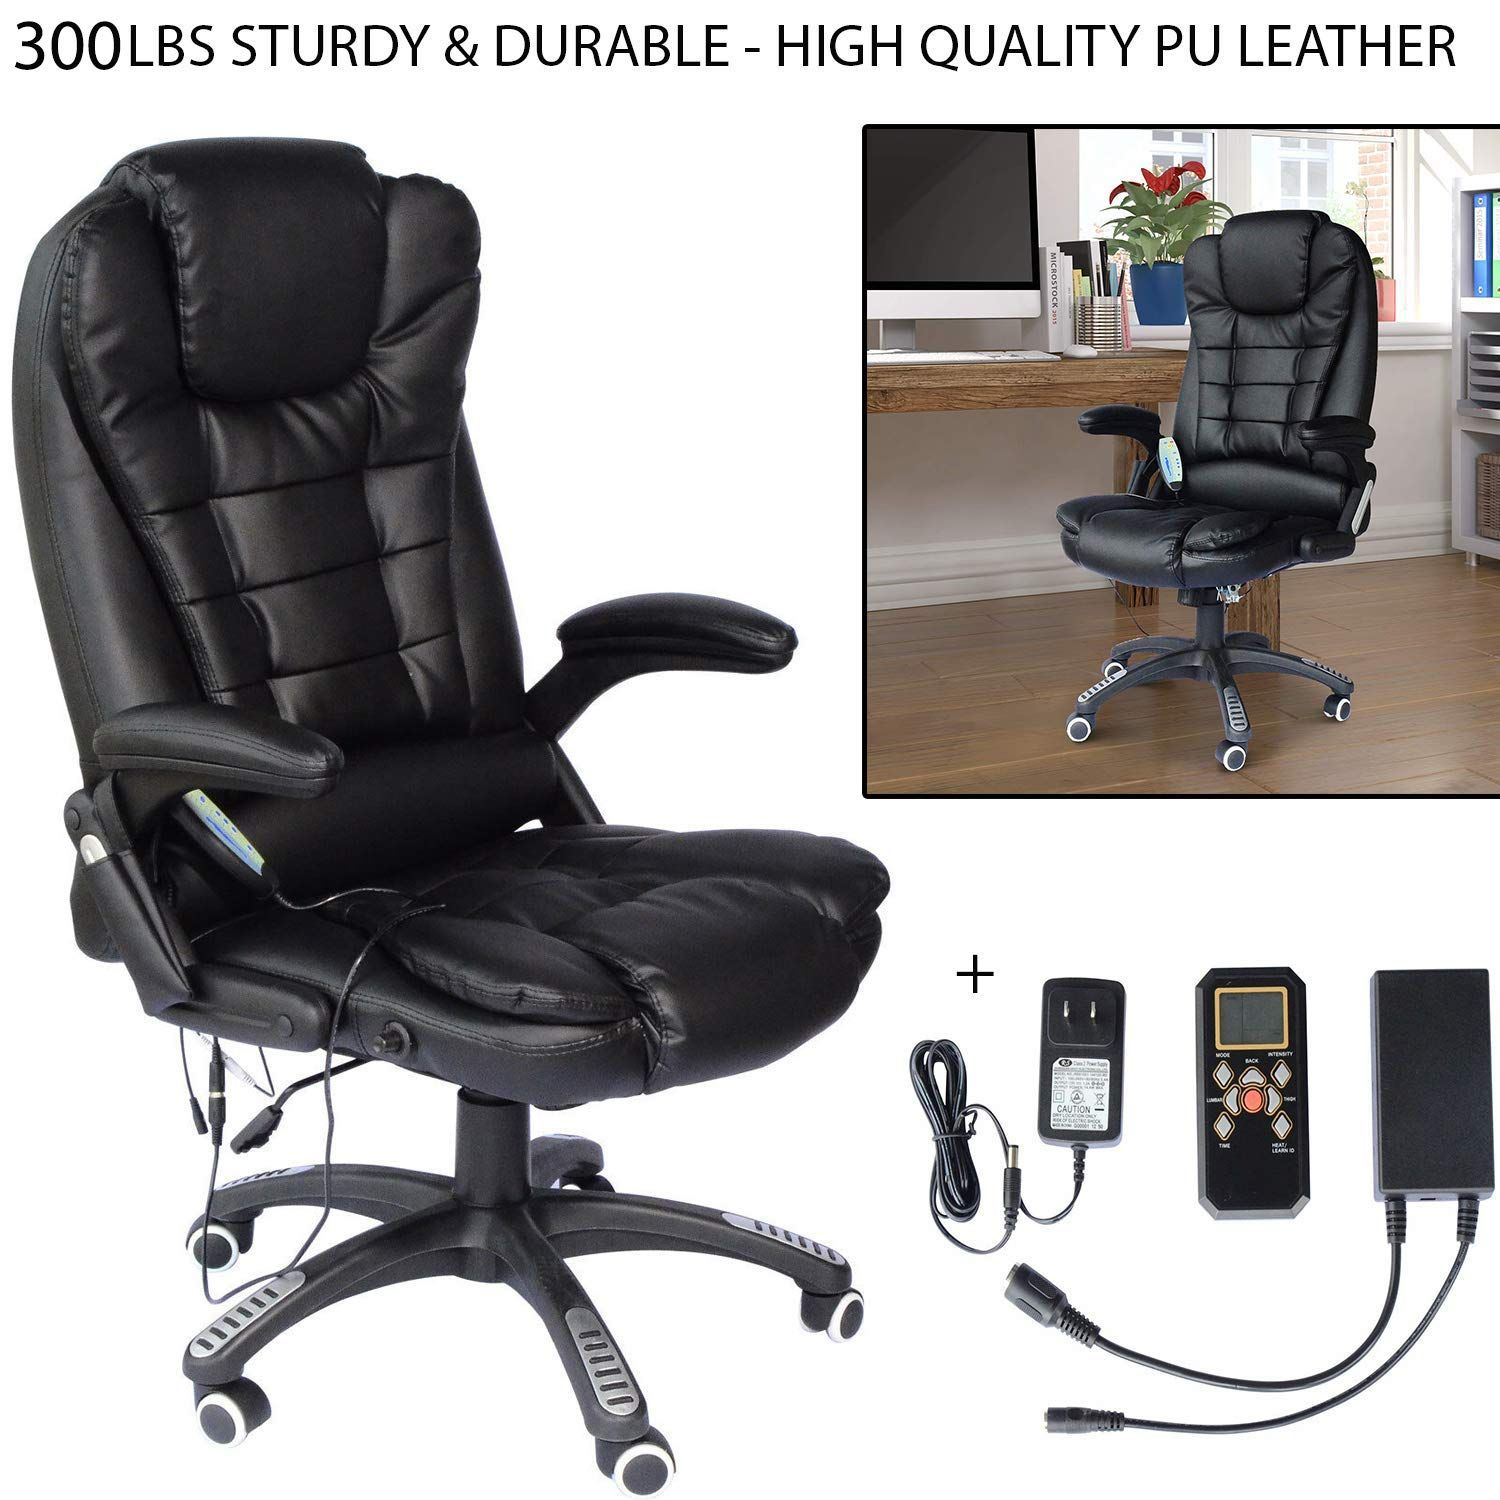 300 Lbs Sturdy Amp Durable Heated Vibrating Office Massage Chair Executive Ergonomic Computer Desk 6 Vib Office Chair Office Massage Chair Black Office Chair